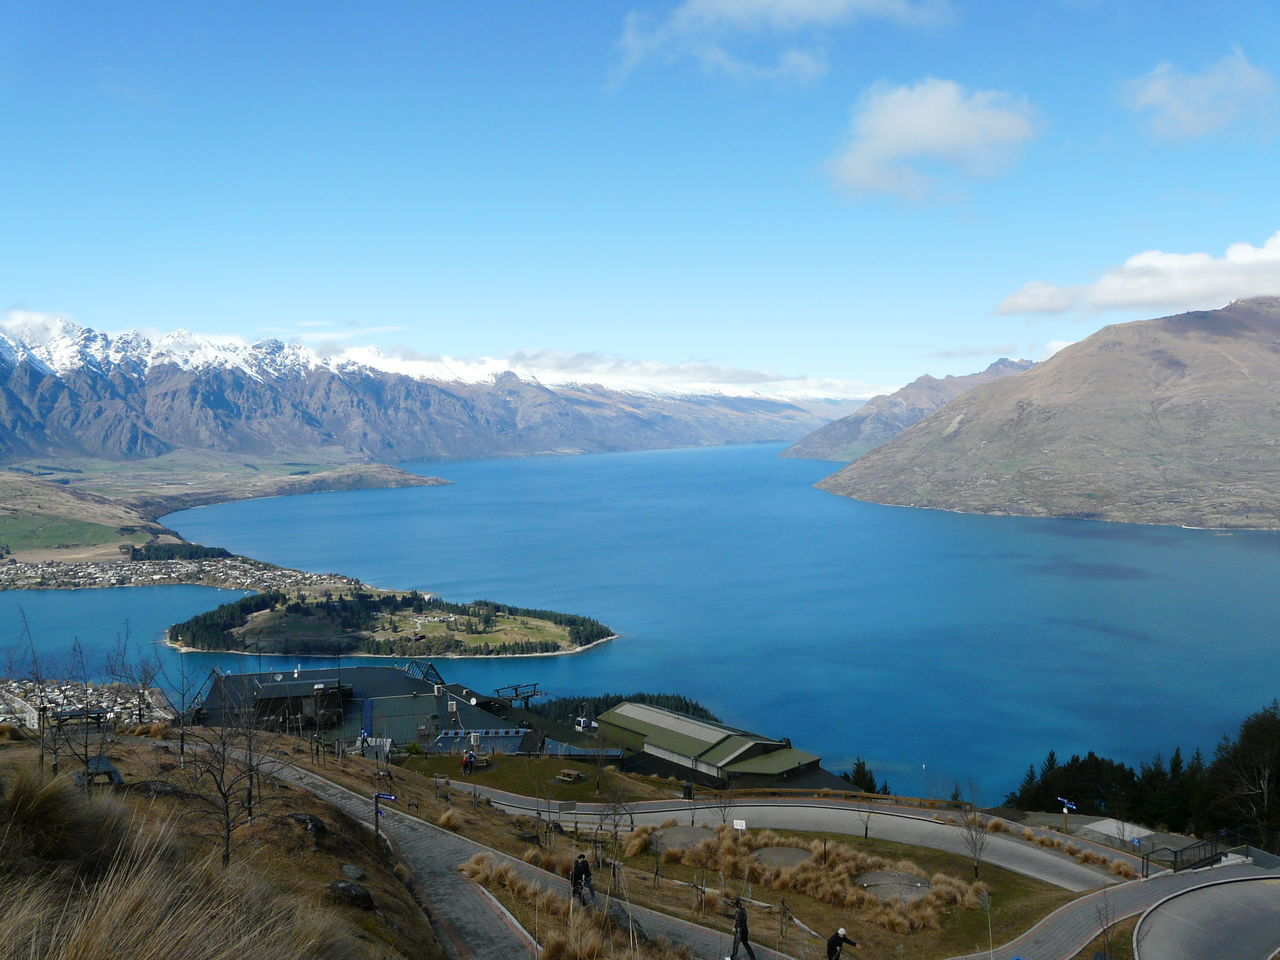 Overlooking Lake Wakatipu and The Remarkables- Queenstown NZ Beauty In Nature Blue Clear Cloud Cloud - Sky Day Idyllic Lake Wakatipu Landscape Leisure Activity Luge Track Mountain Mountain Range Nature New Zealand Beauty New Zealand Landscape New Zealand Scenery Outdoors Queenstown Nz Scenics Sky The Great Outdoors - 2016 EyeEm Awards The Remarkables Tranquil Scene Tranquility